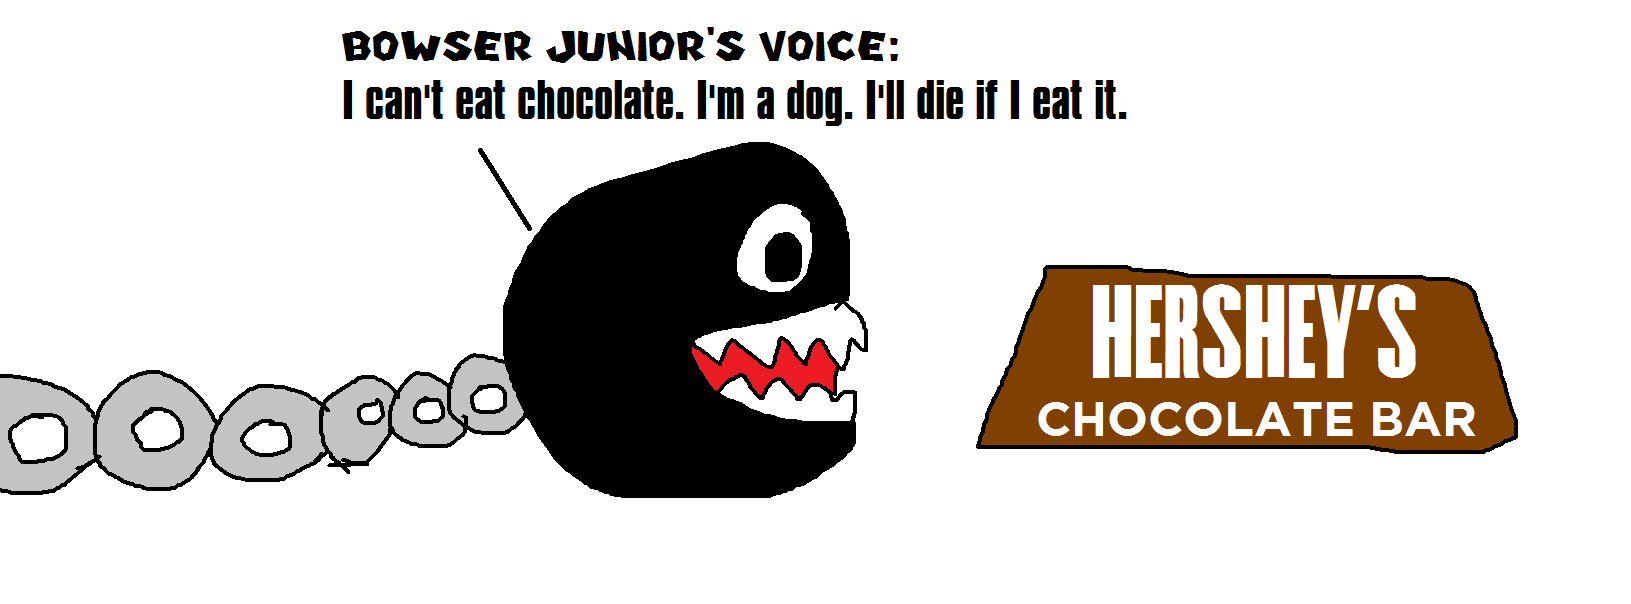 Bowser Junior the Dog Can't Eat Chocolate by MikeEddyAdmirer89 on ...